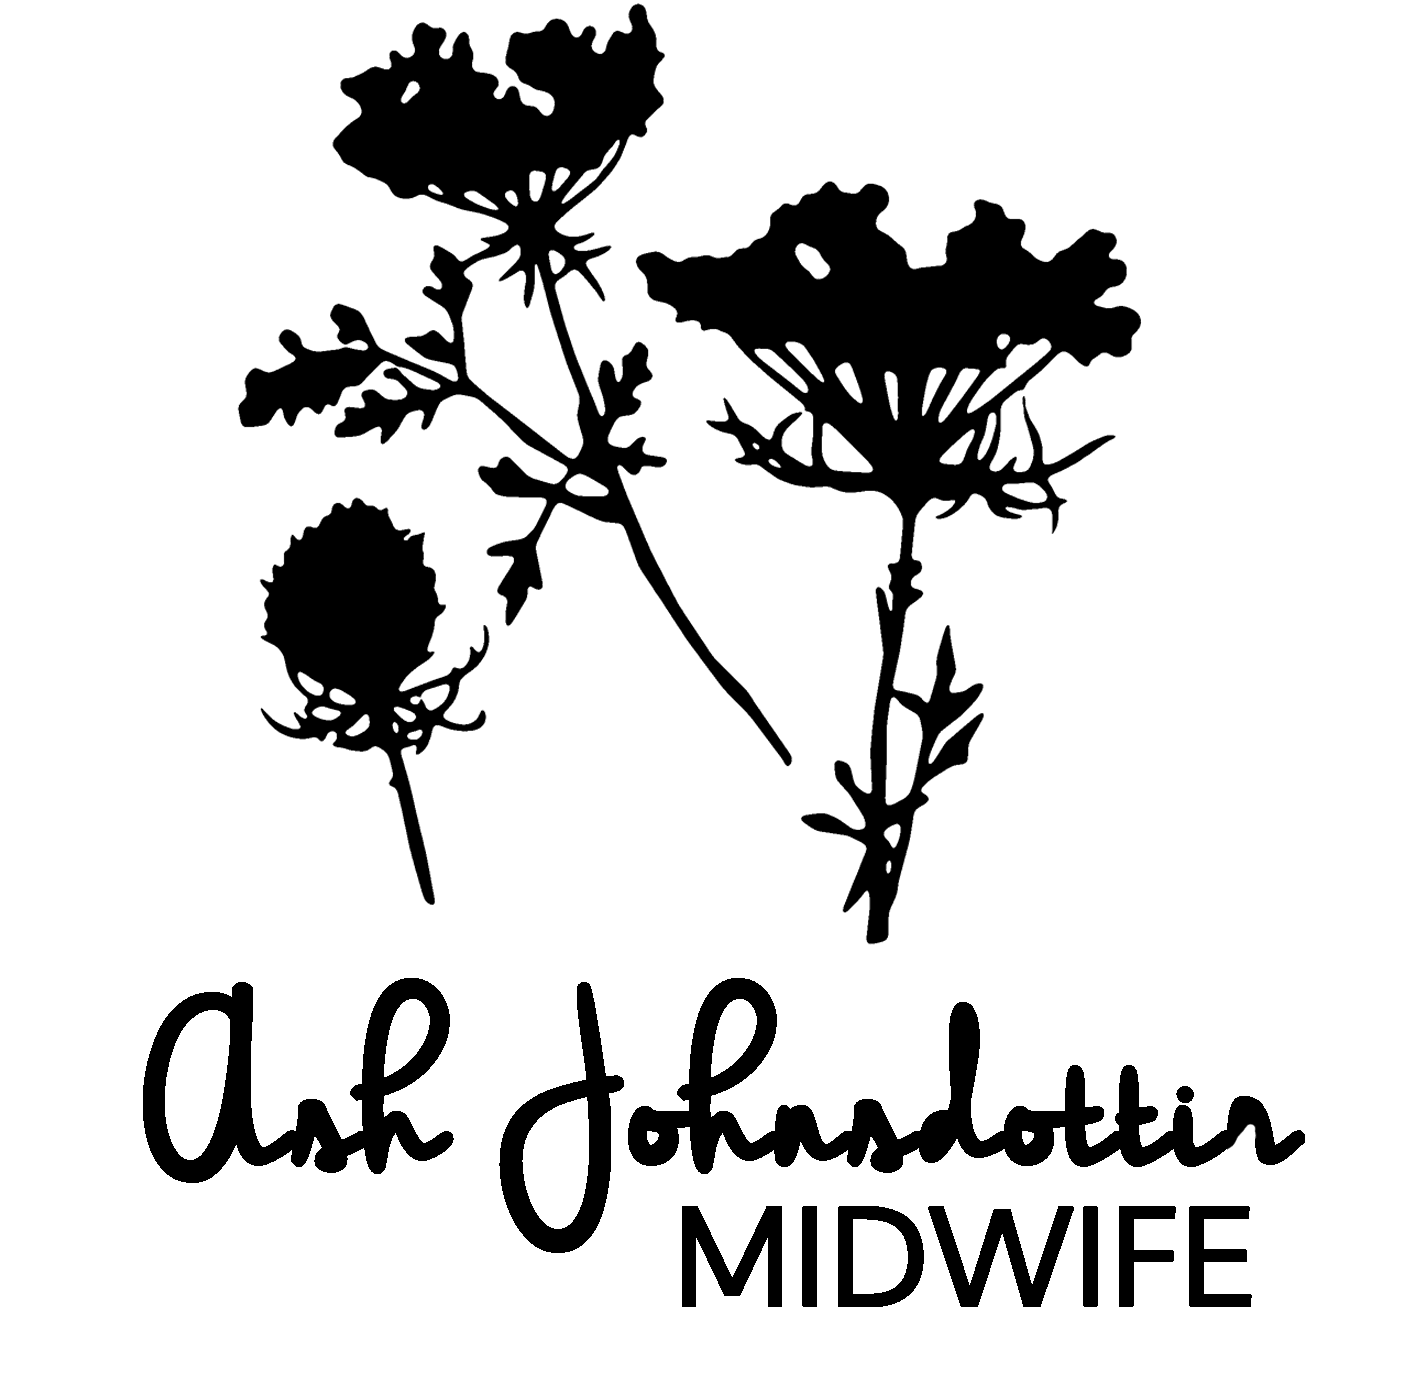 Ash Johnsdottir, Midwife Serving Corvallis and Oregon's Willamette Valley